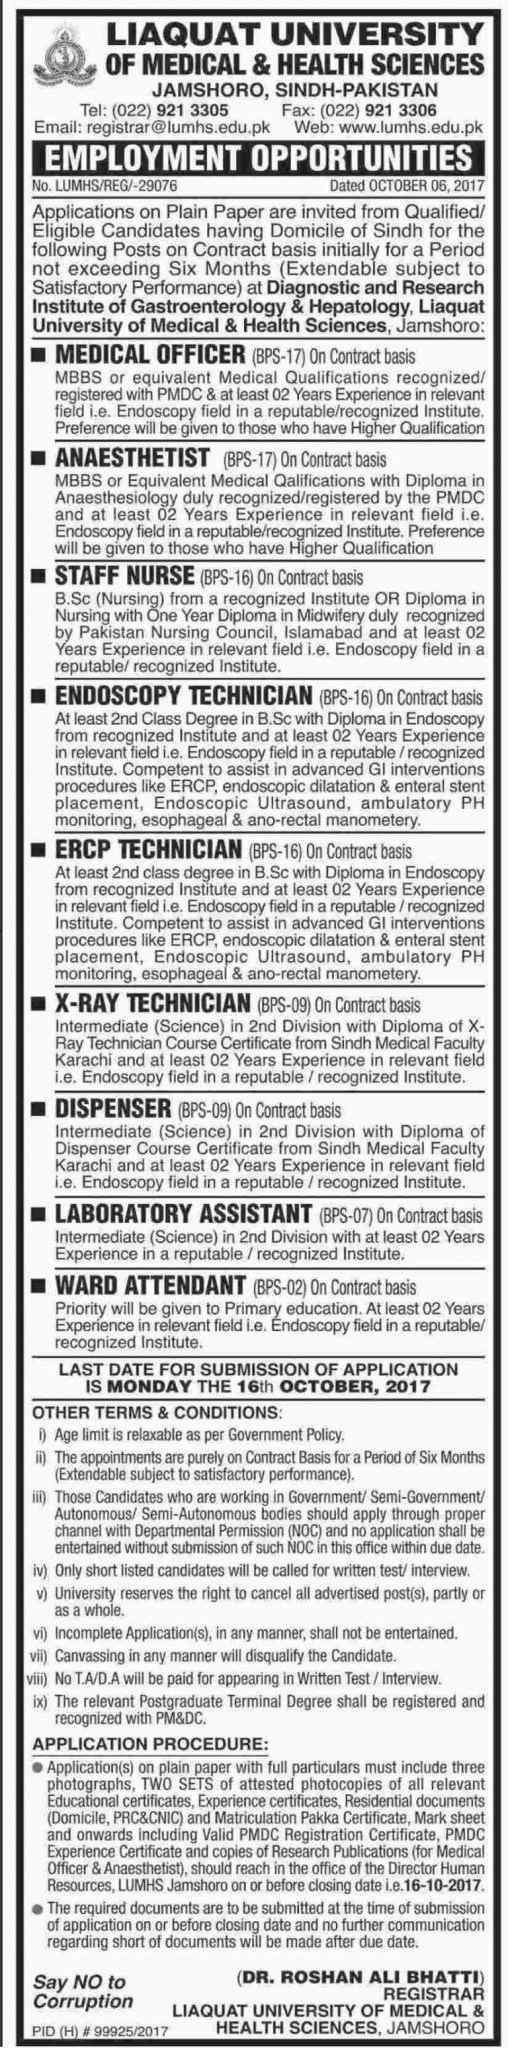 Liaquat University Of Medical And Health Sciences Jobs  In